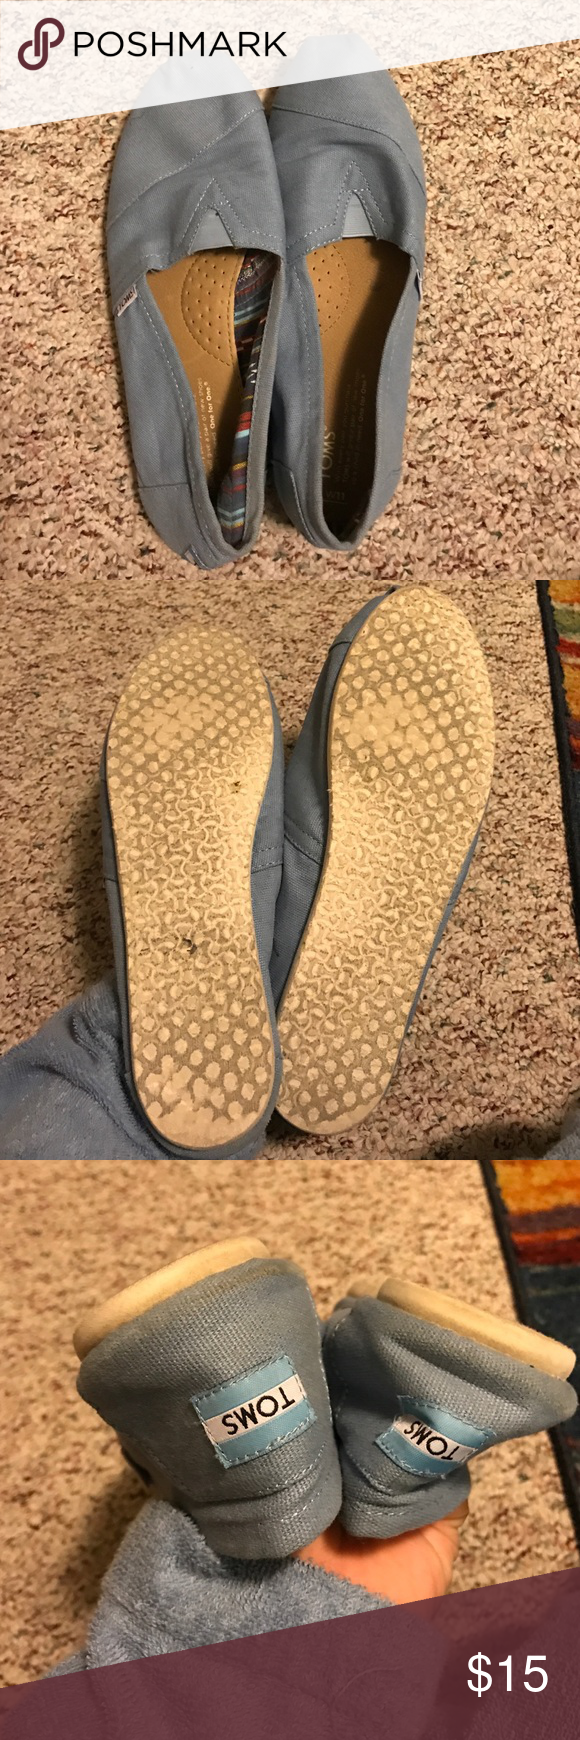 Sky Blue Toms Gently worn Toms . Great for a casual look. Comes with original box. TOMS Shoes Flats & Loafers